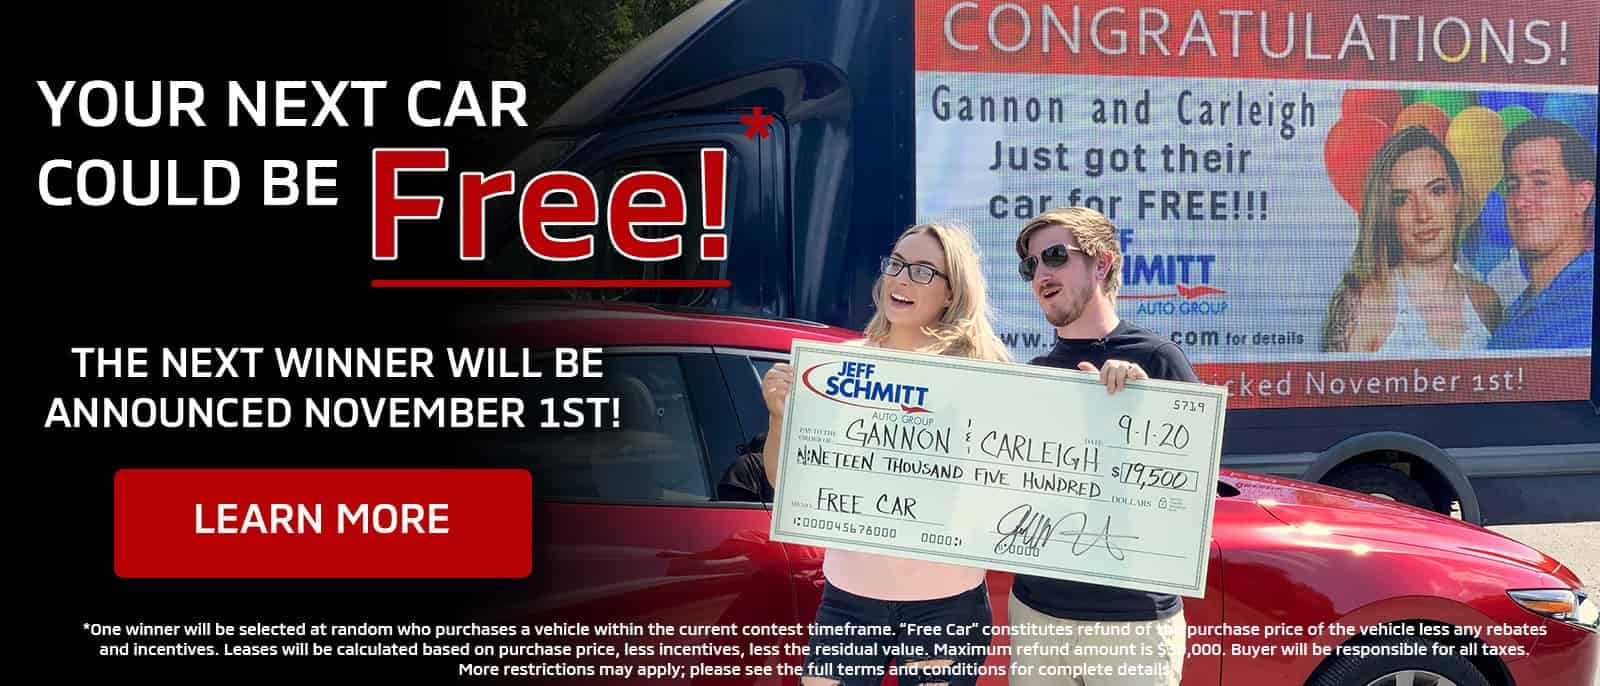 Your Next Car Could Be Free!